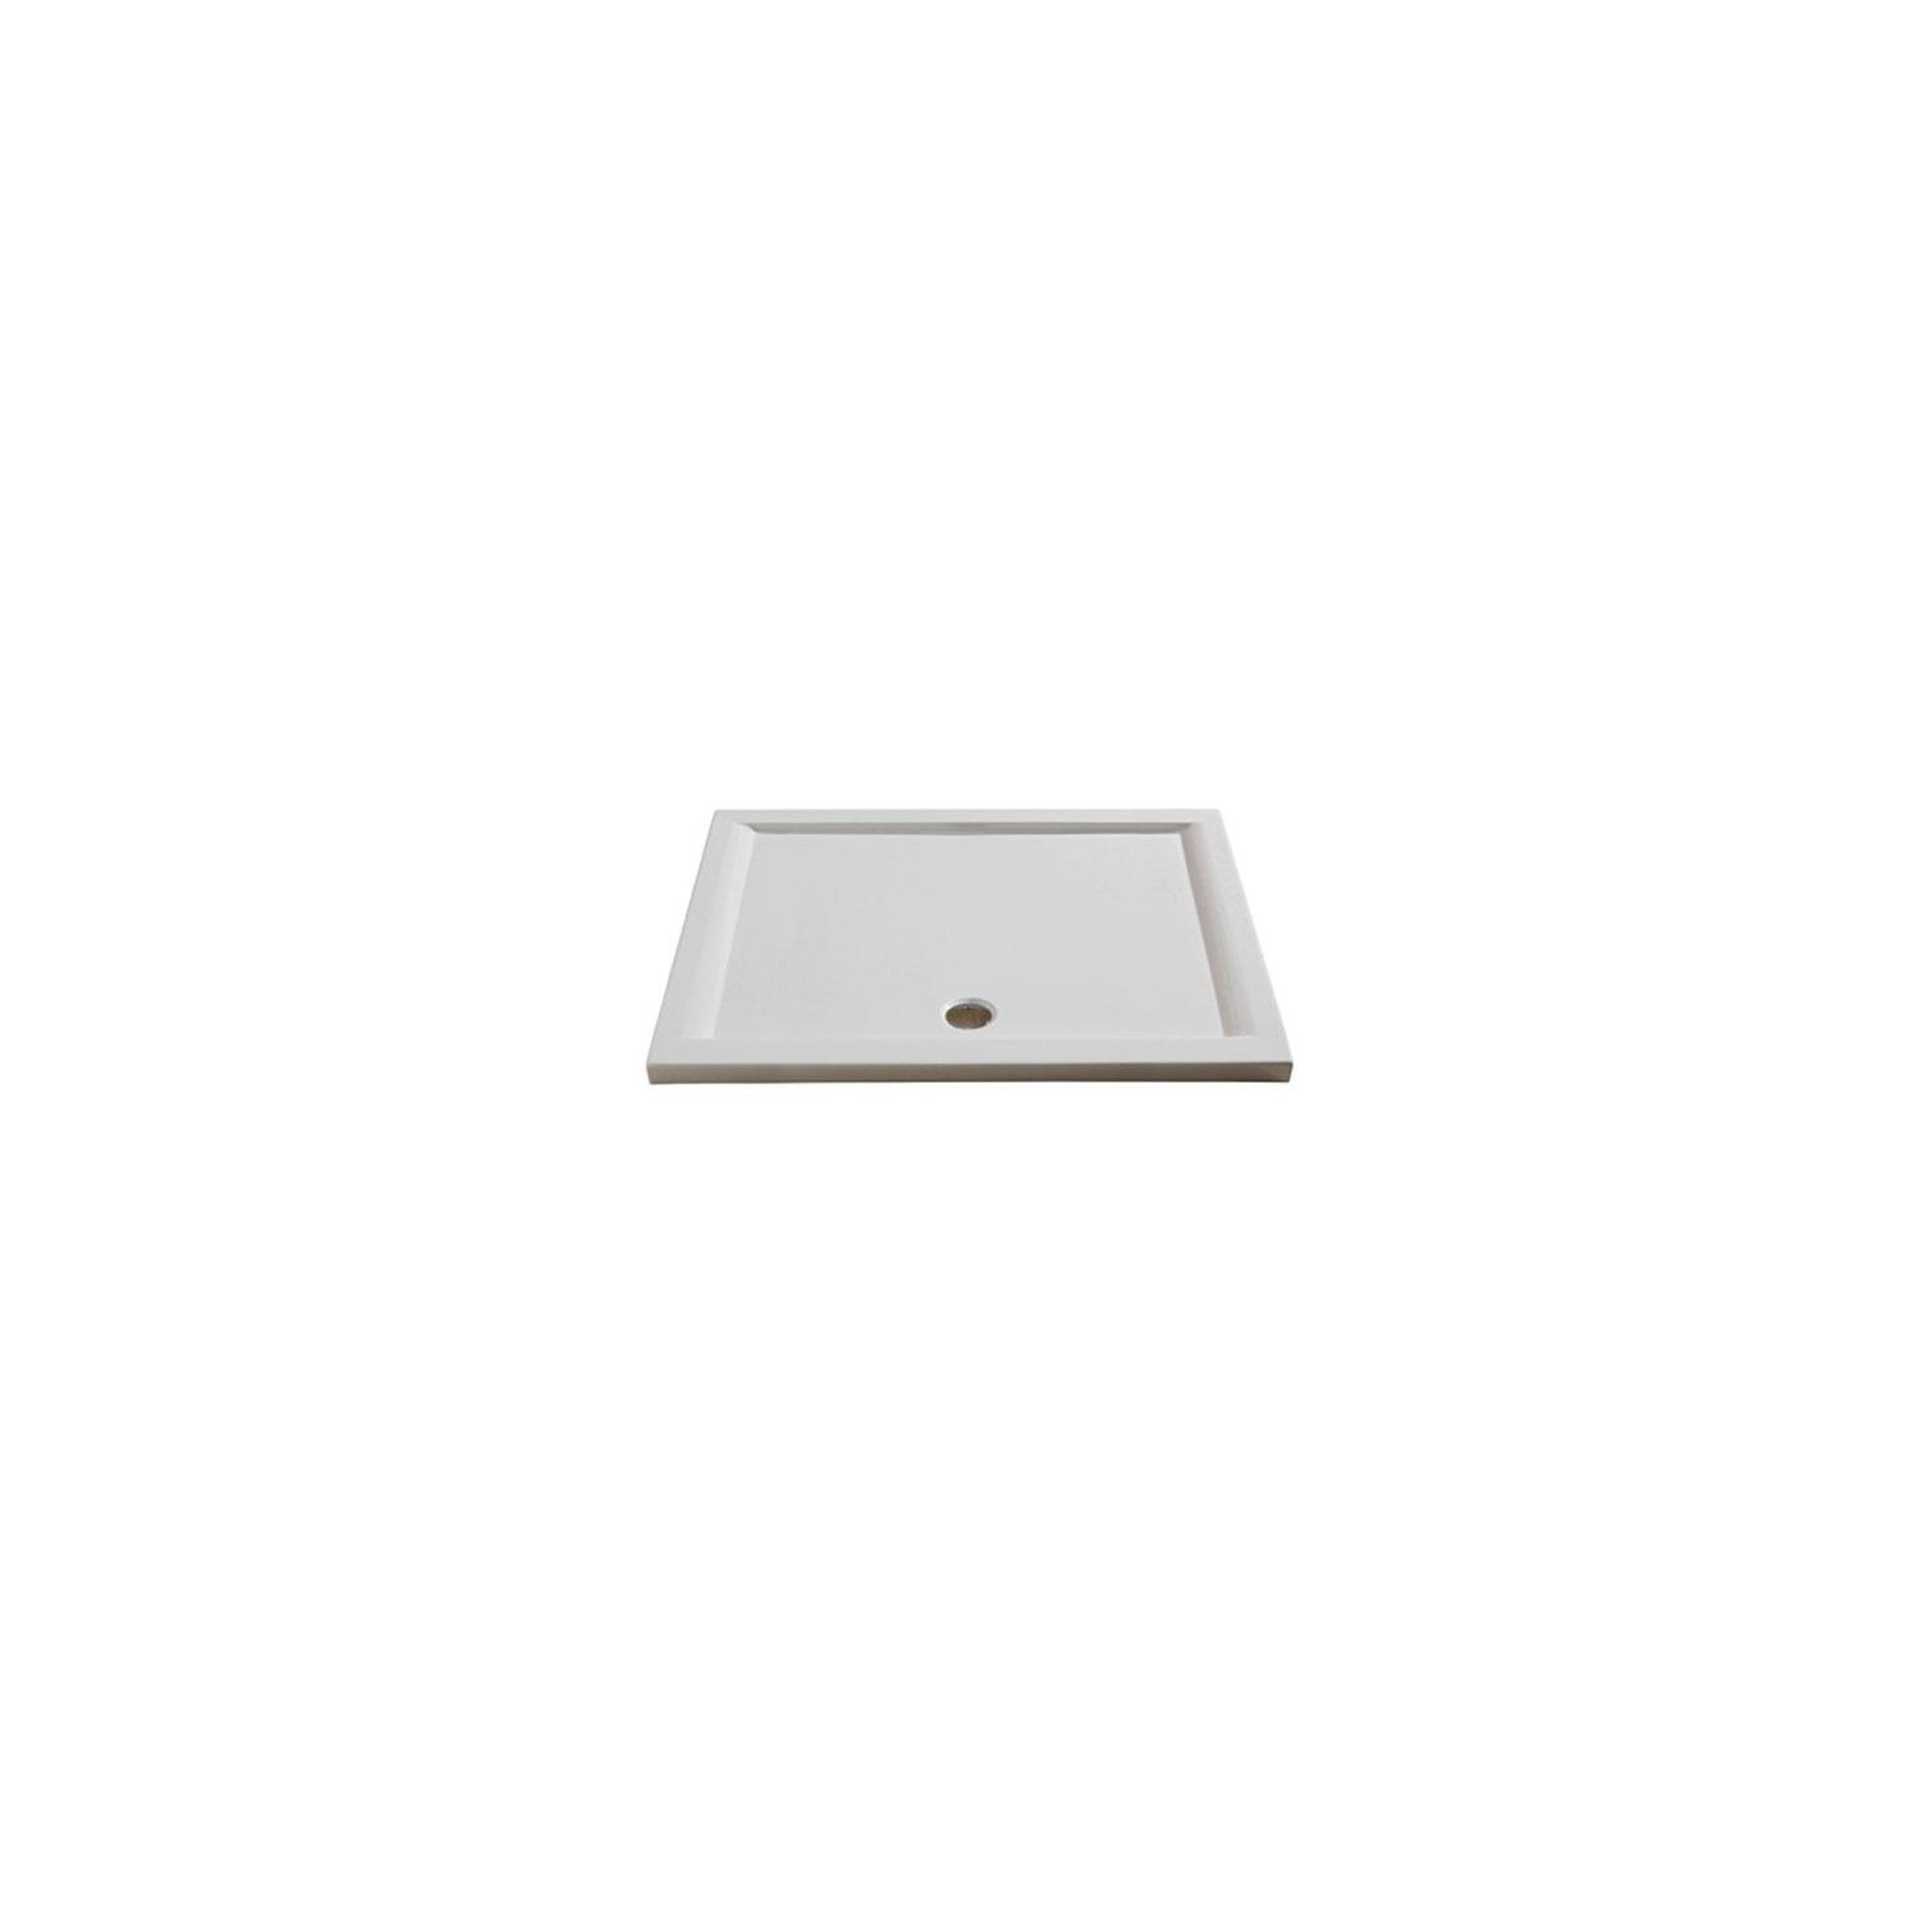 Merlyn Merlyte Low Profile Rectangular Shower Tray, 1600mm x 900mm at Tesco Direct